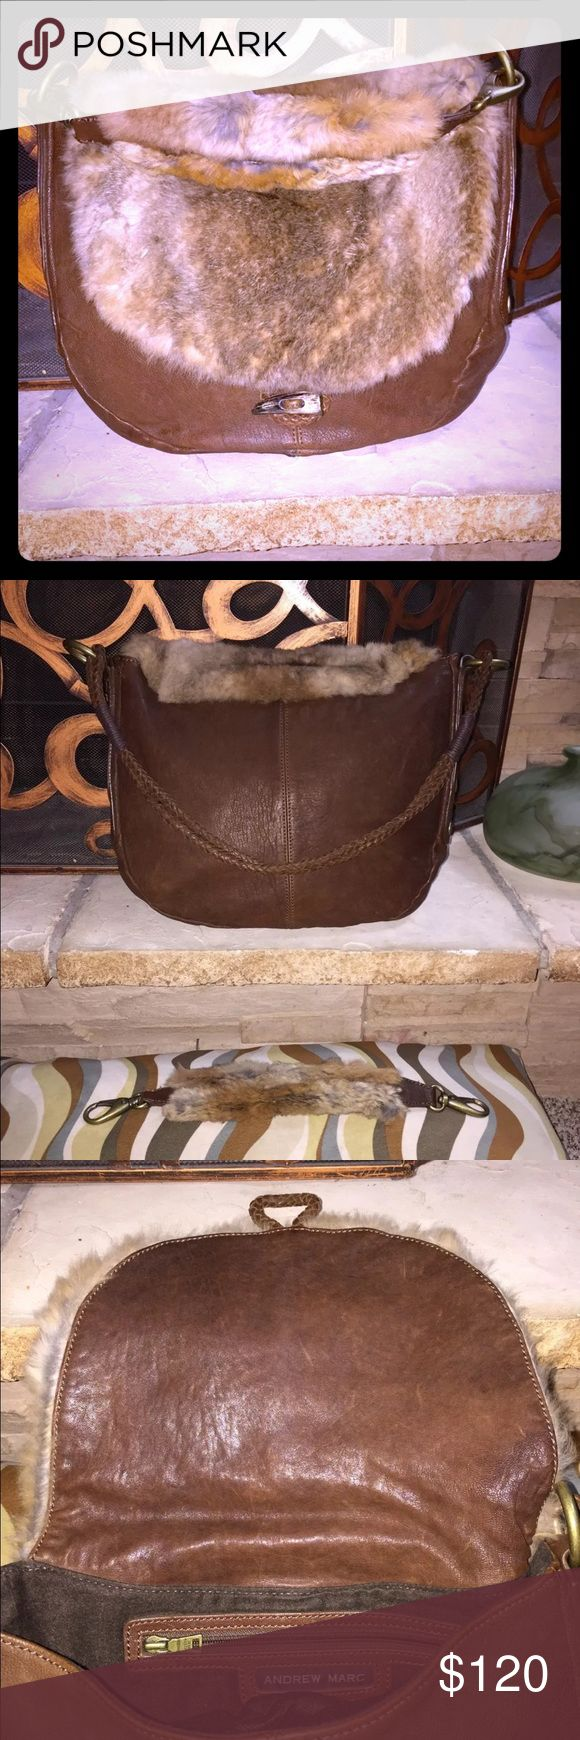 Beautiful Andrew Marc Brown Leather/Fur Handbag Really neat brown leather and real fur trim bag. VERY WELL TAKEN CARE OF!  Fur strap attachment and dust bag INCLUDED!! Only used twice and pics showing only minor scratches but honestly think its just part of the leather grain.  I bought it this way because I thought it added to the rustic feel of the piece. This purse has a very natural feel and the leather used seems to have a great deal of character. Also has a toggle that looks like a…